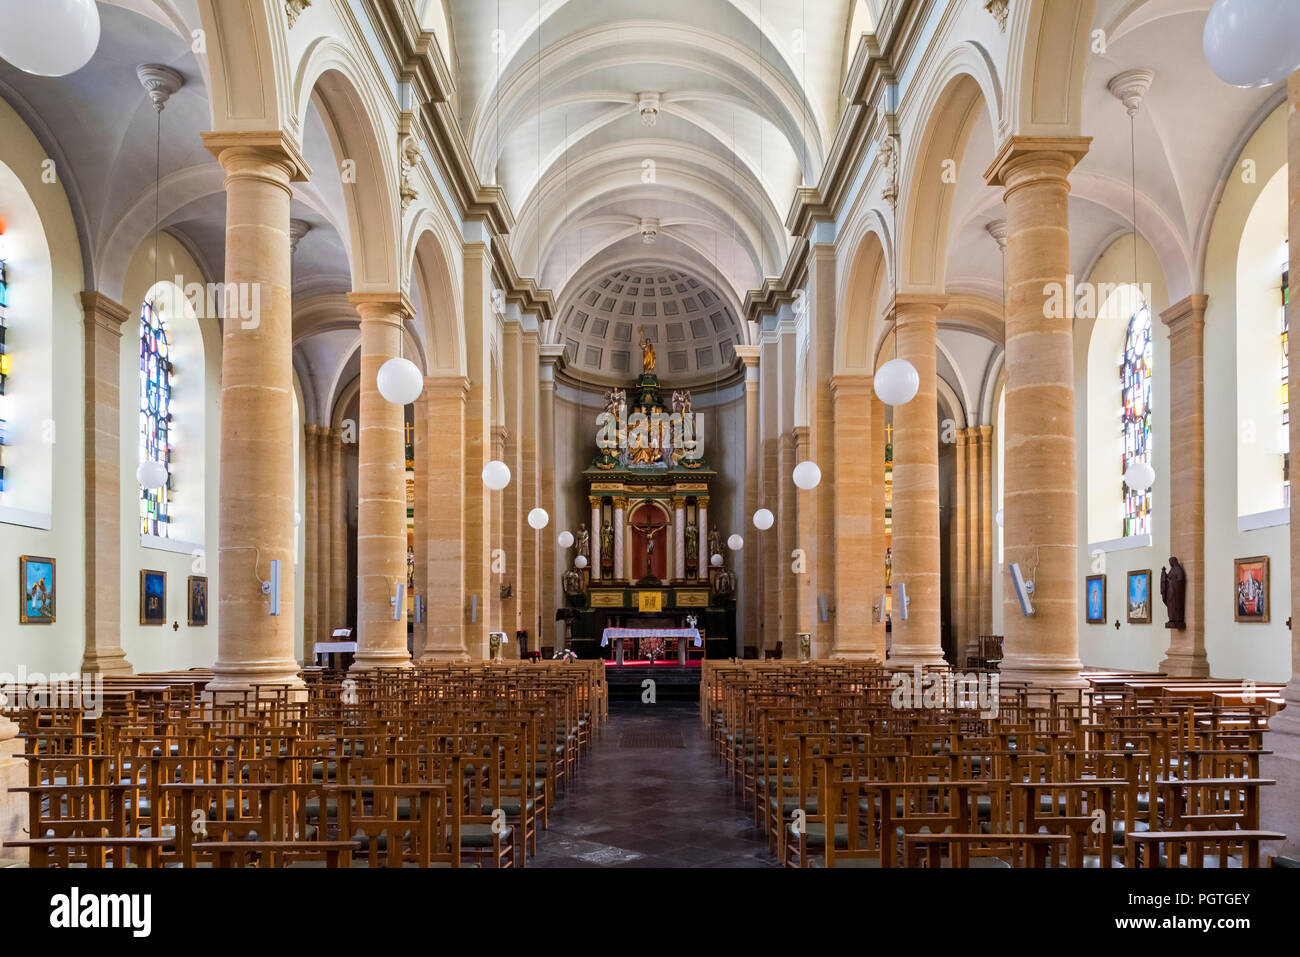 The Neoclassical Saint Peter and Paul's church / Église Saints-Pierre-et-Paul in the city Bouillon, Luxembourg Province, Belgian Ardennes, Belgium - Stock Image